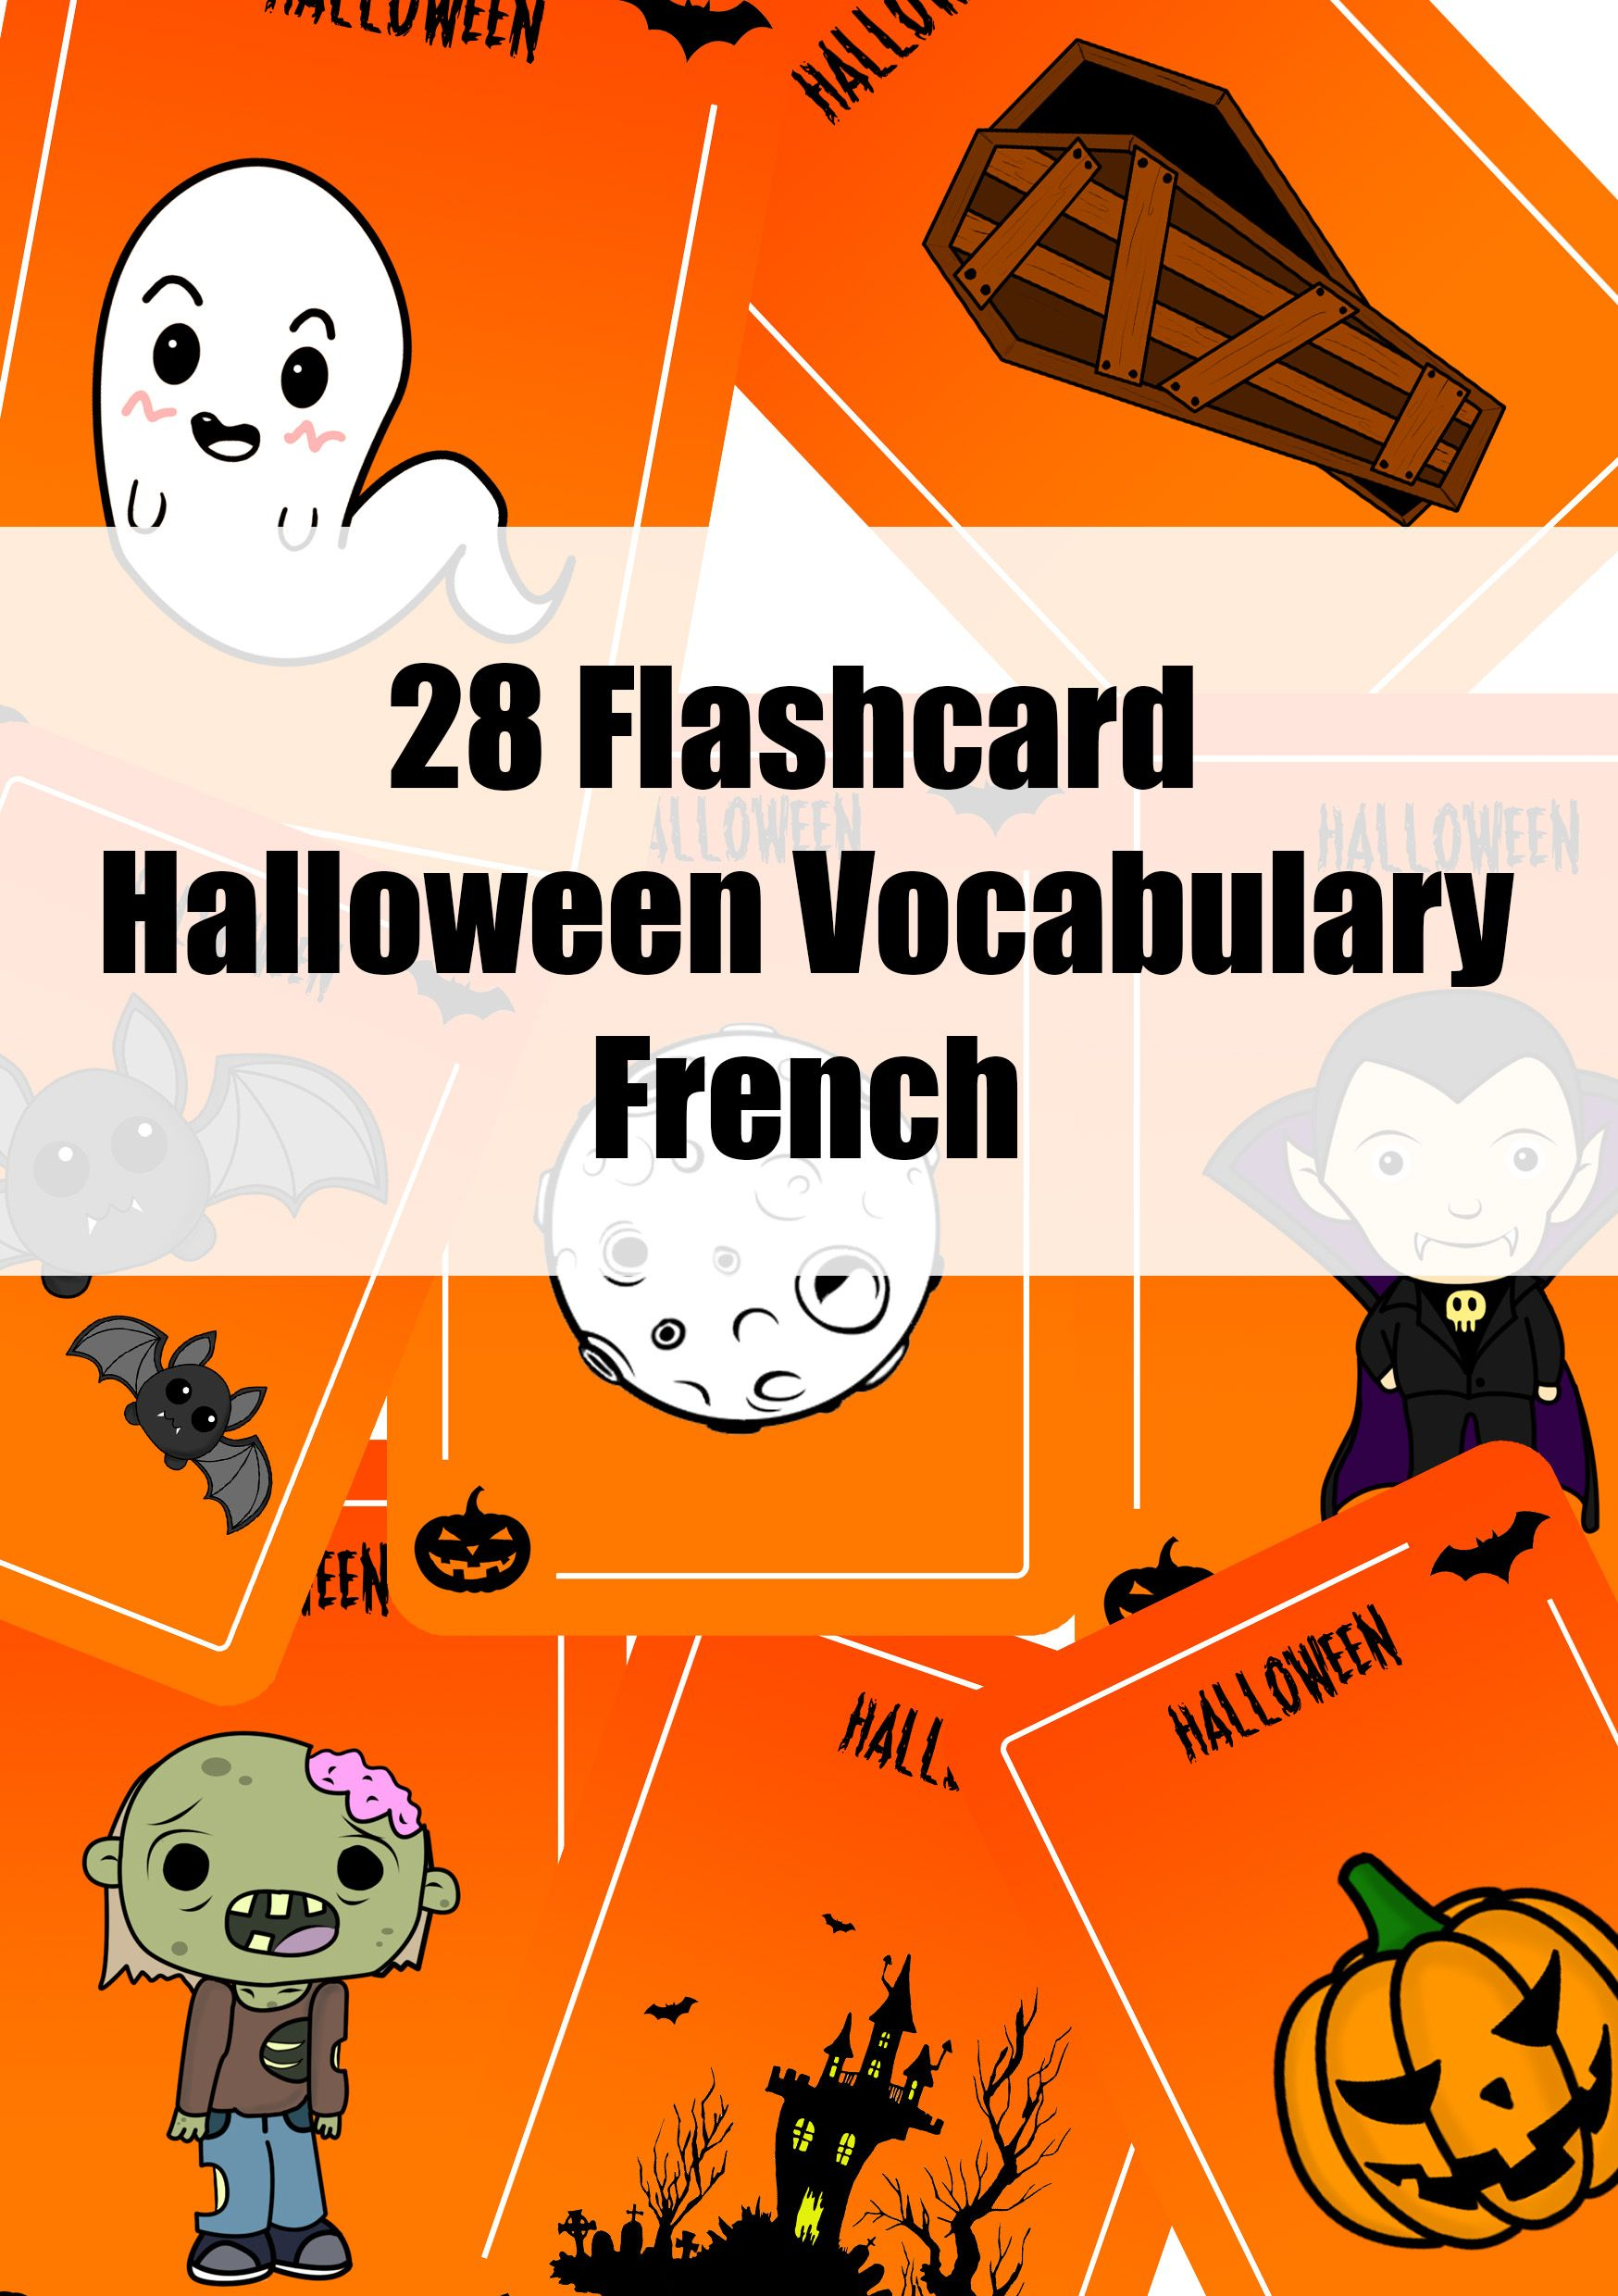 28 Flashcard Halloween Vocabulary In French